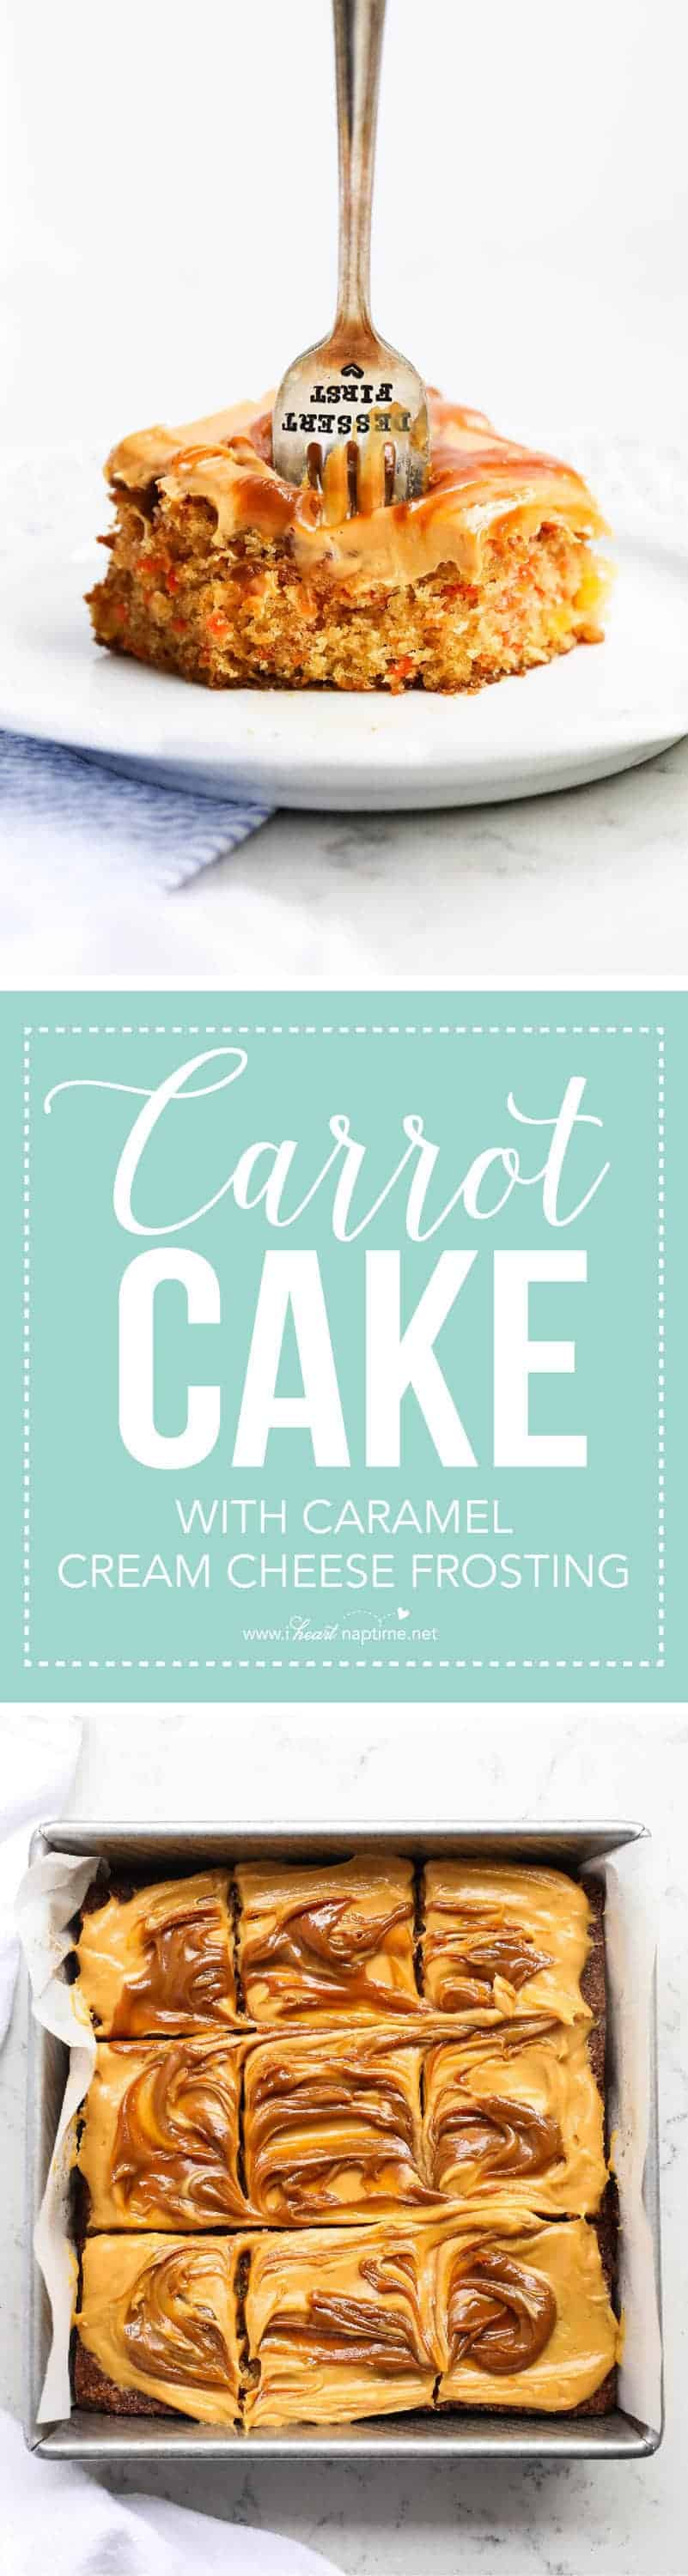 Carrot Cake with Caramel Cream Cheese Frosting ...the perfect dessert to make for Easter Sunday or any celebration!